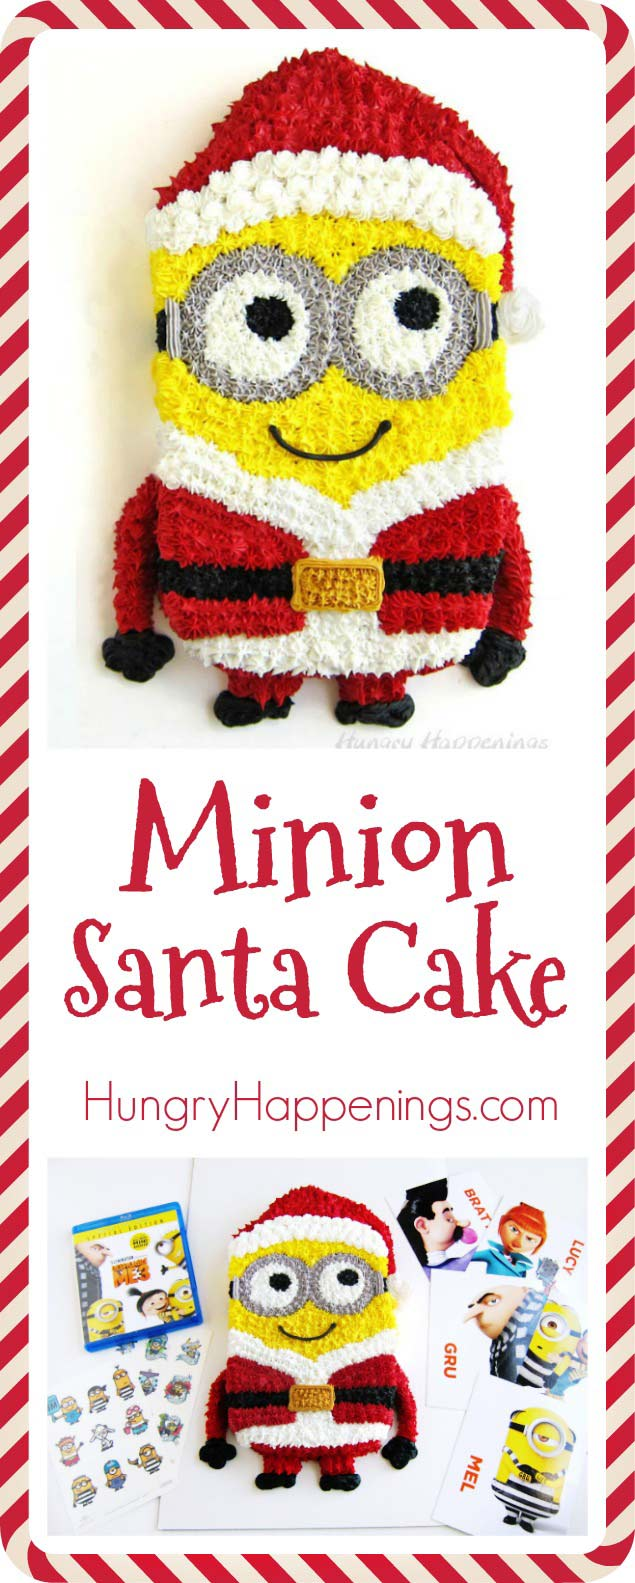 A Recipe For A Minion Santa Cake